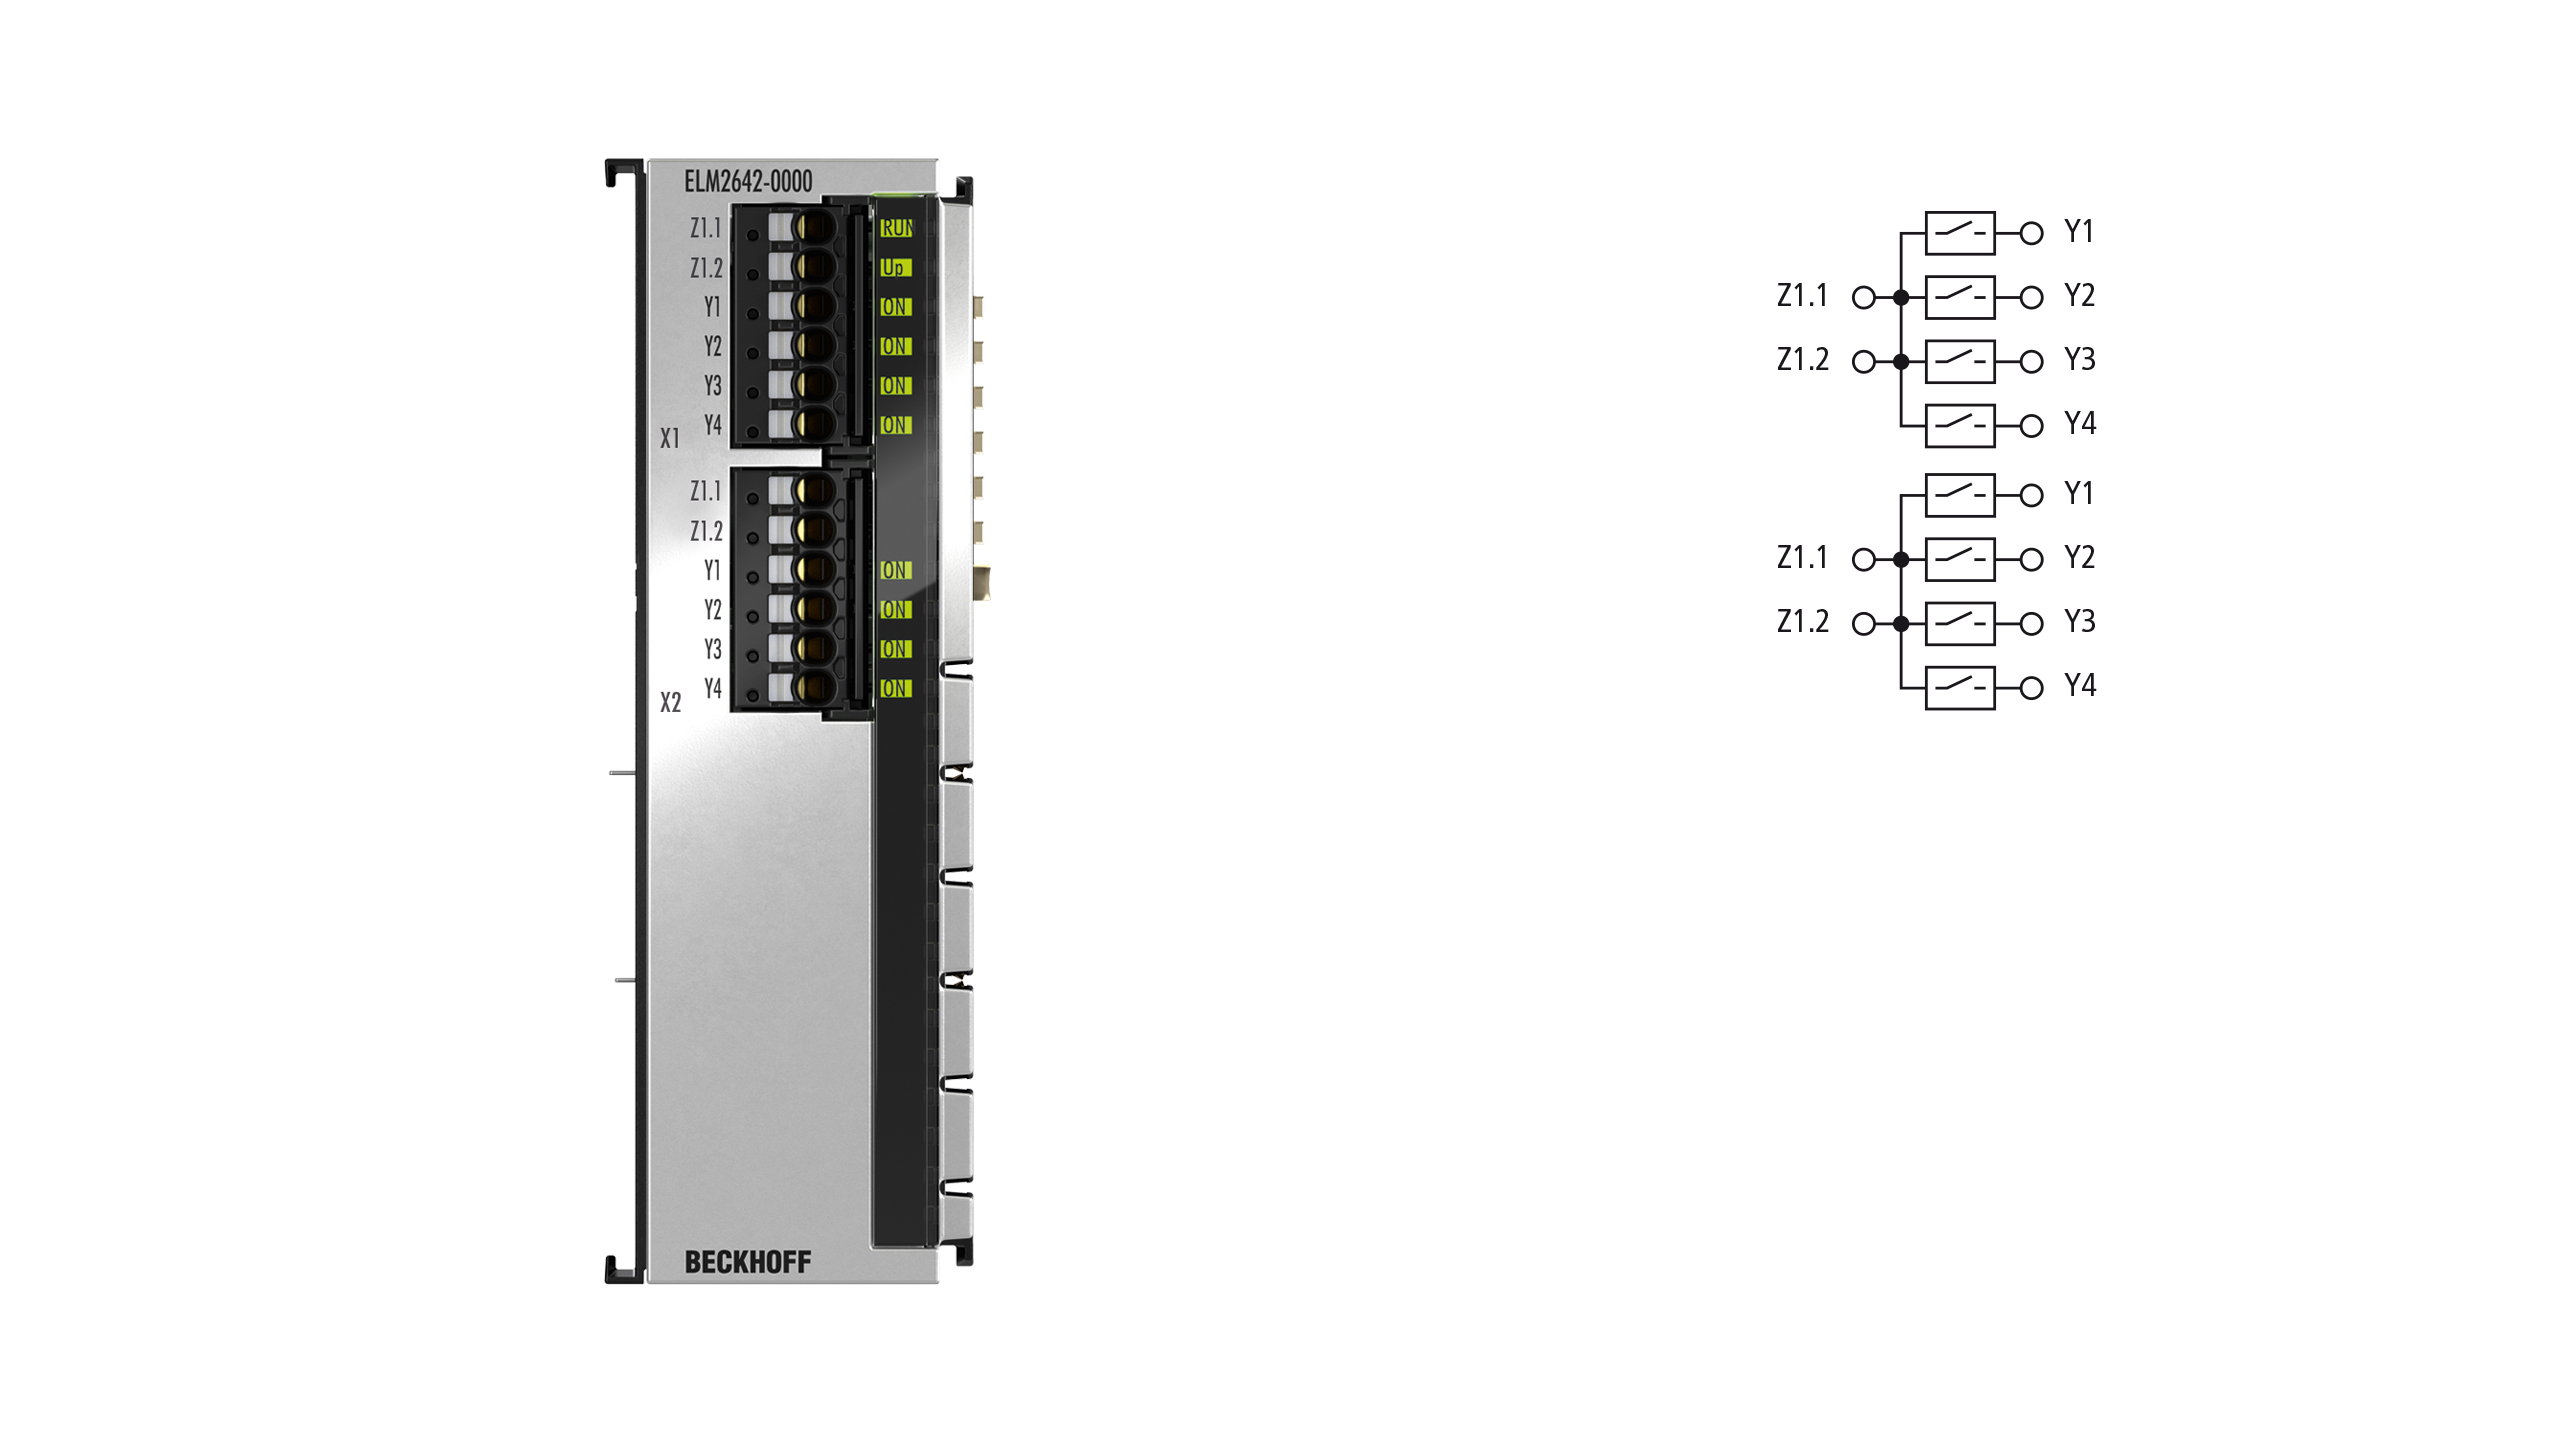 ELM2642-0000 | 2-channel multiplexer, 1 x 4 reed relays 48 V AC/DC, 0.5 A, potential-free make contacts